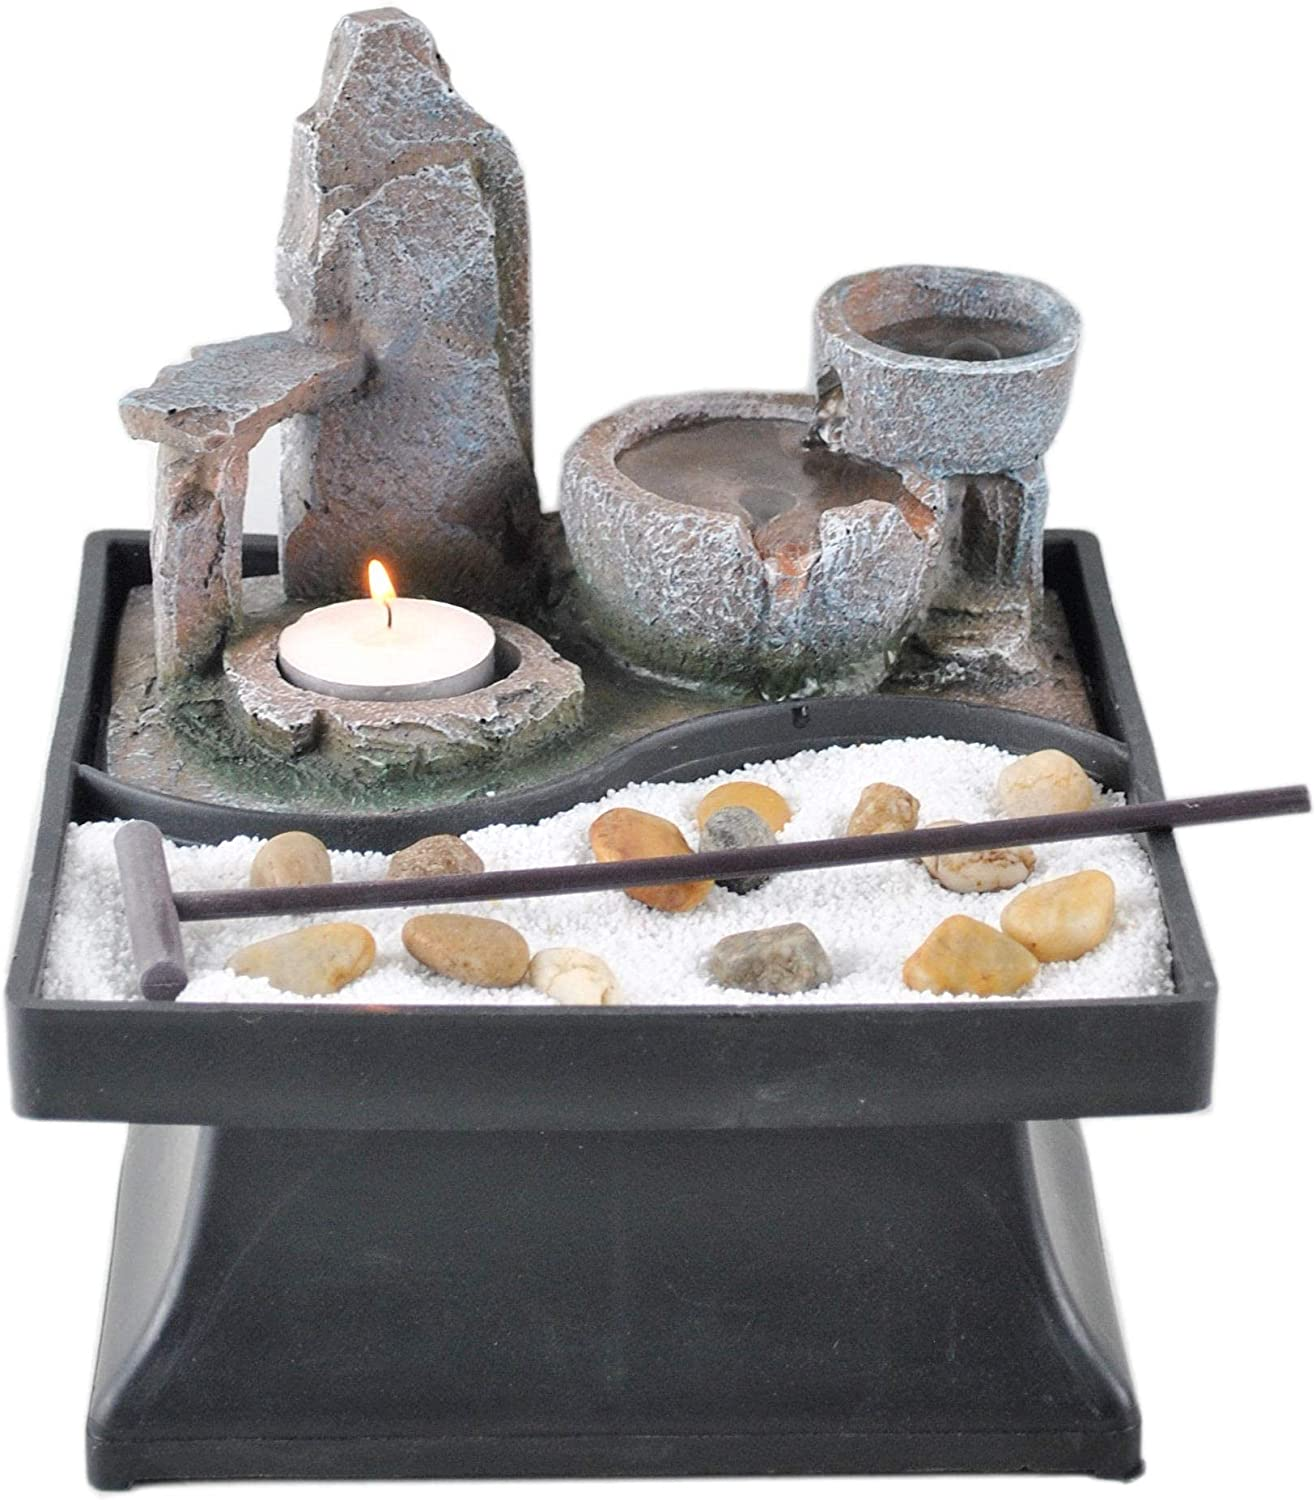 Germanda Indoor Relaxation Tabletop Zen Garden Decor With Water Fountain Tealight Candle Holder and Accessories Automatic Pump with Power Switch with Calming Natural Water Sound for Home or Office